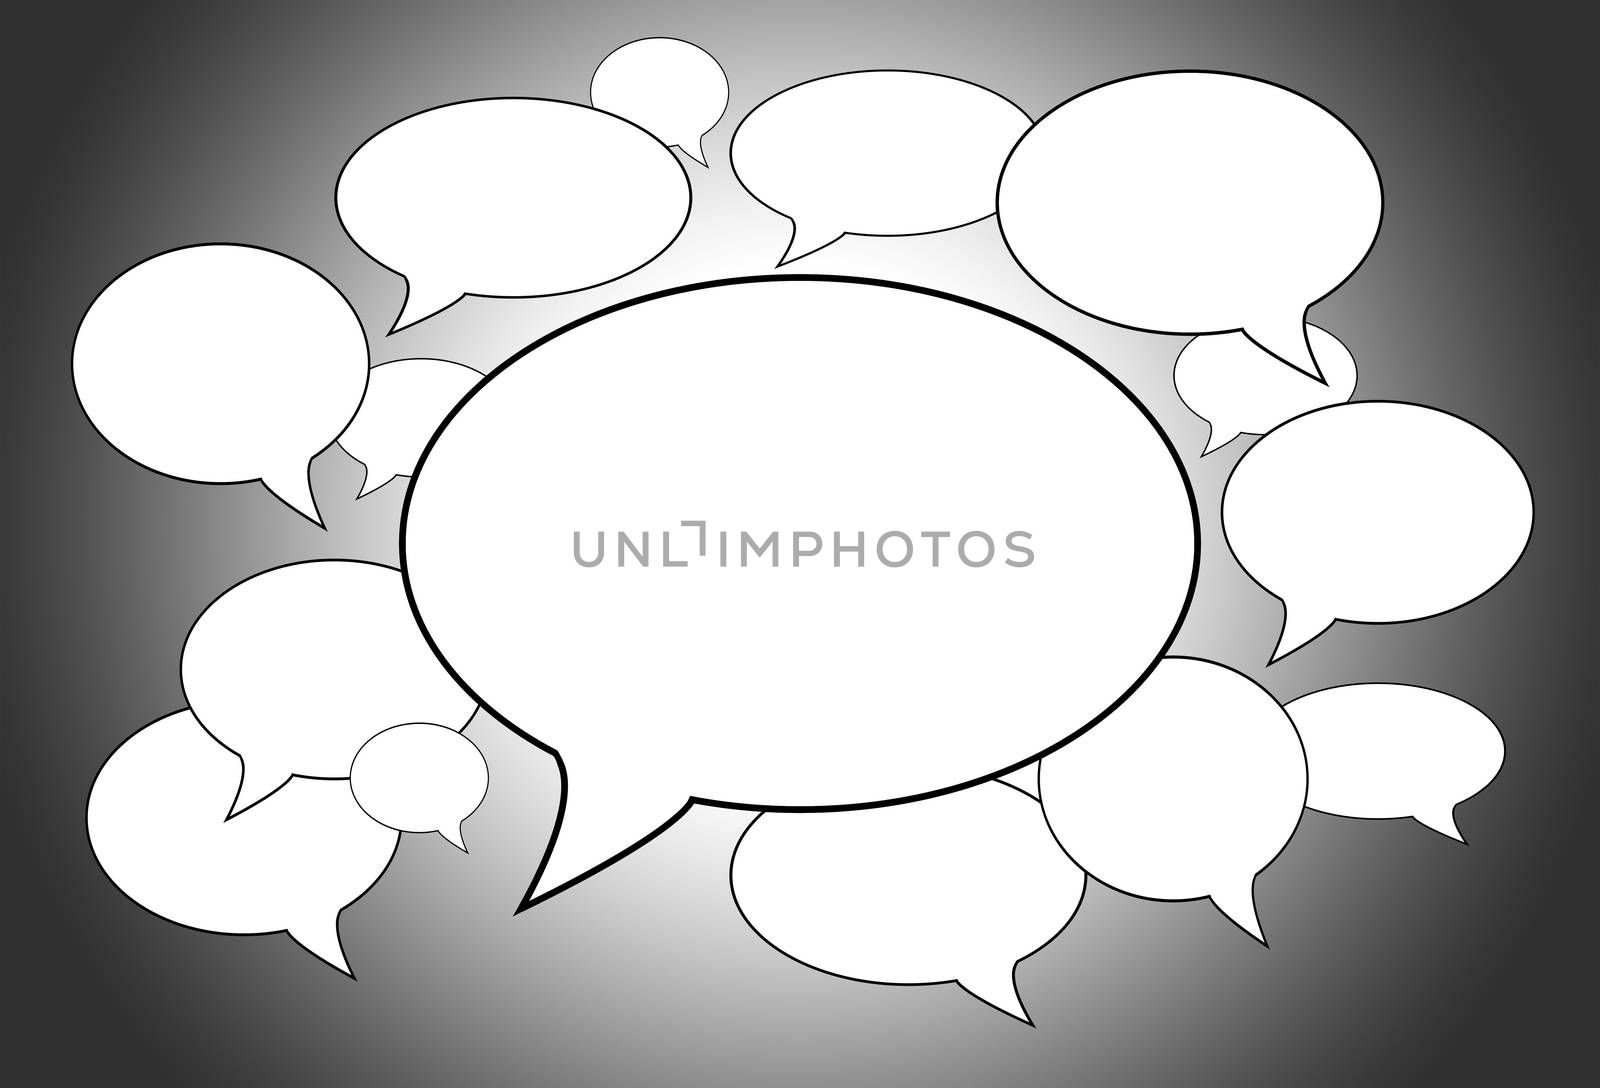 Communication concept - many speech bubbles, a big one in the middle